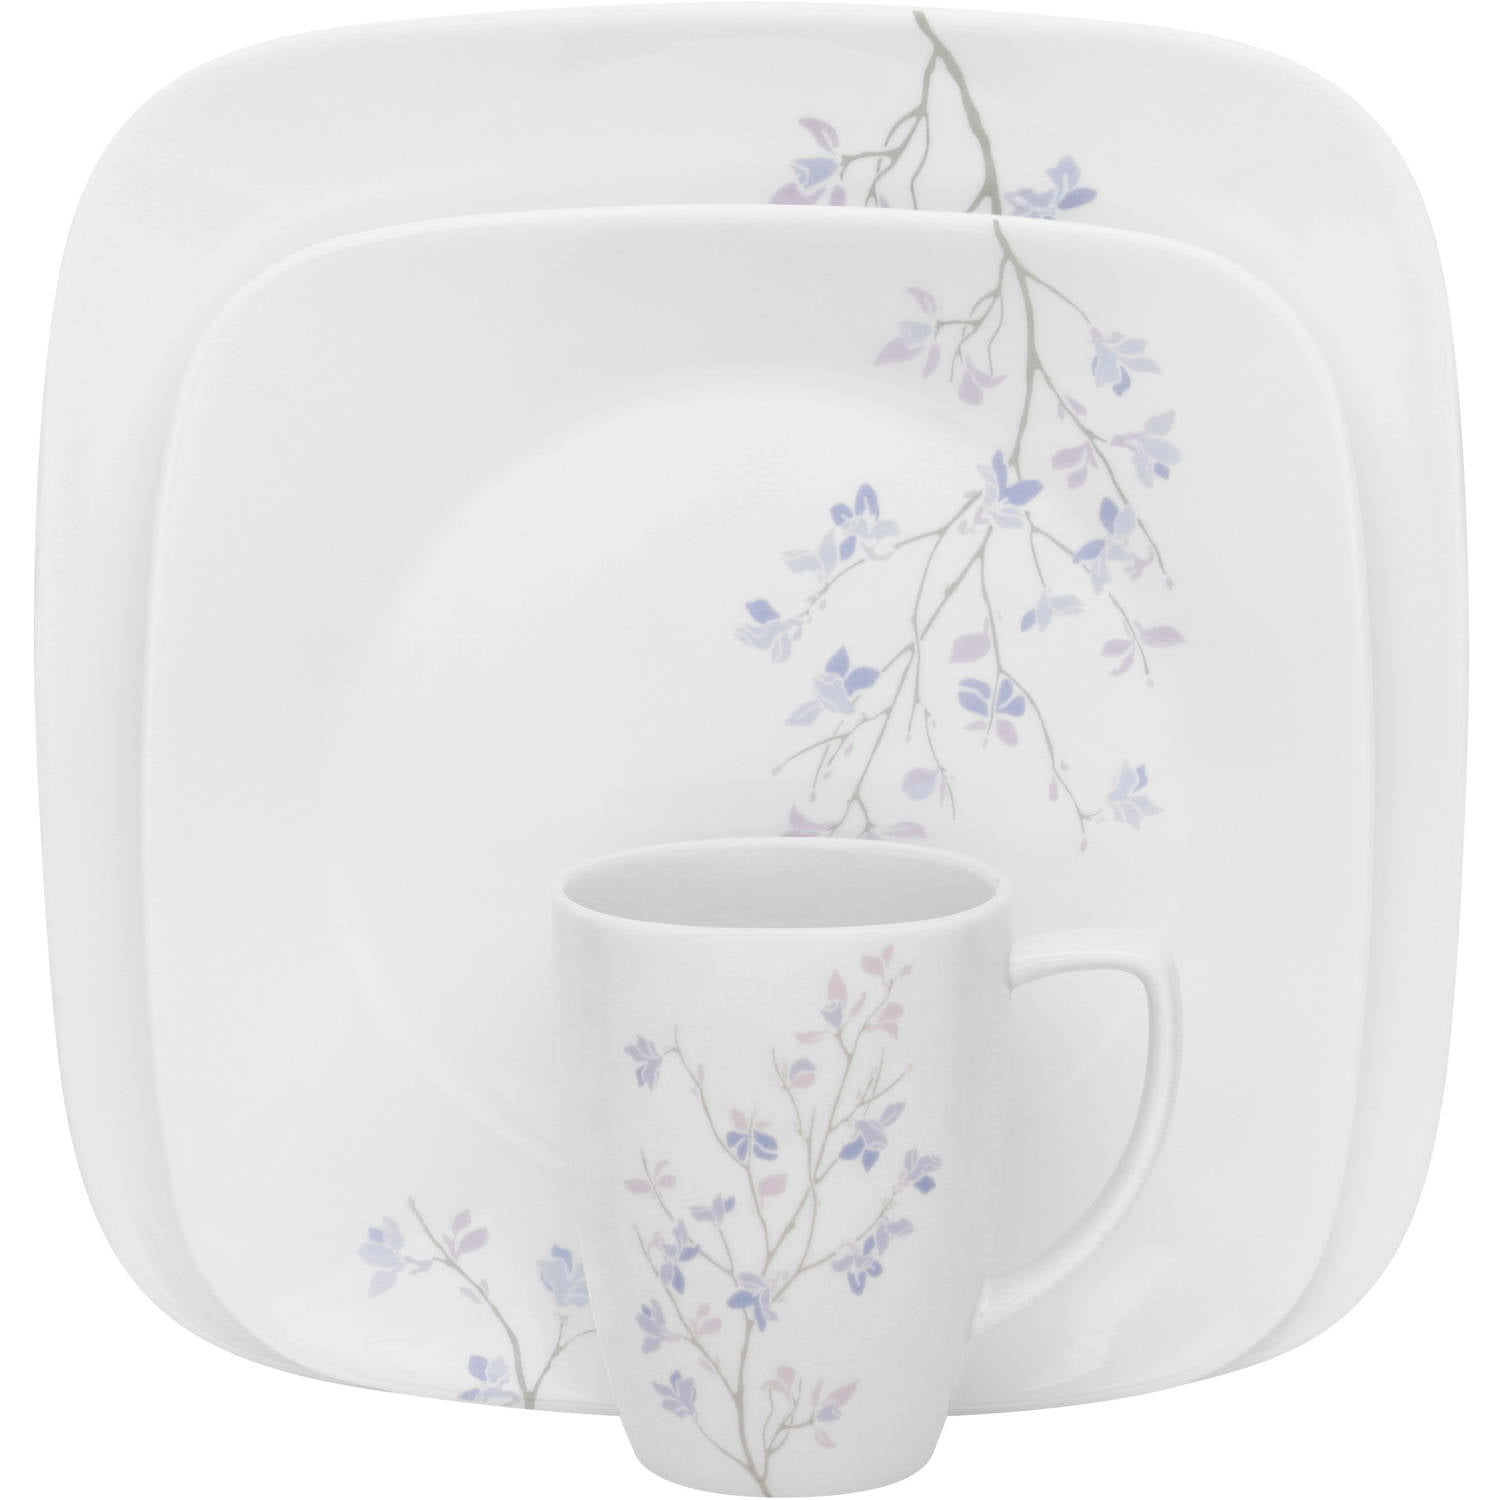 sc 1 st  Walmart : black and white square dinnerware sets - pezcame.com